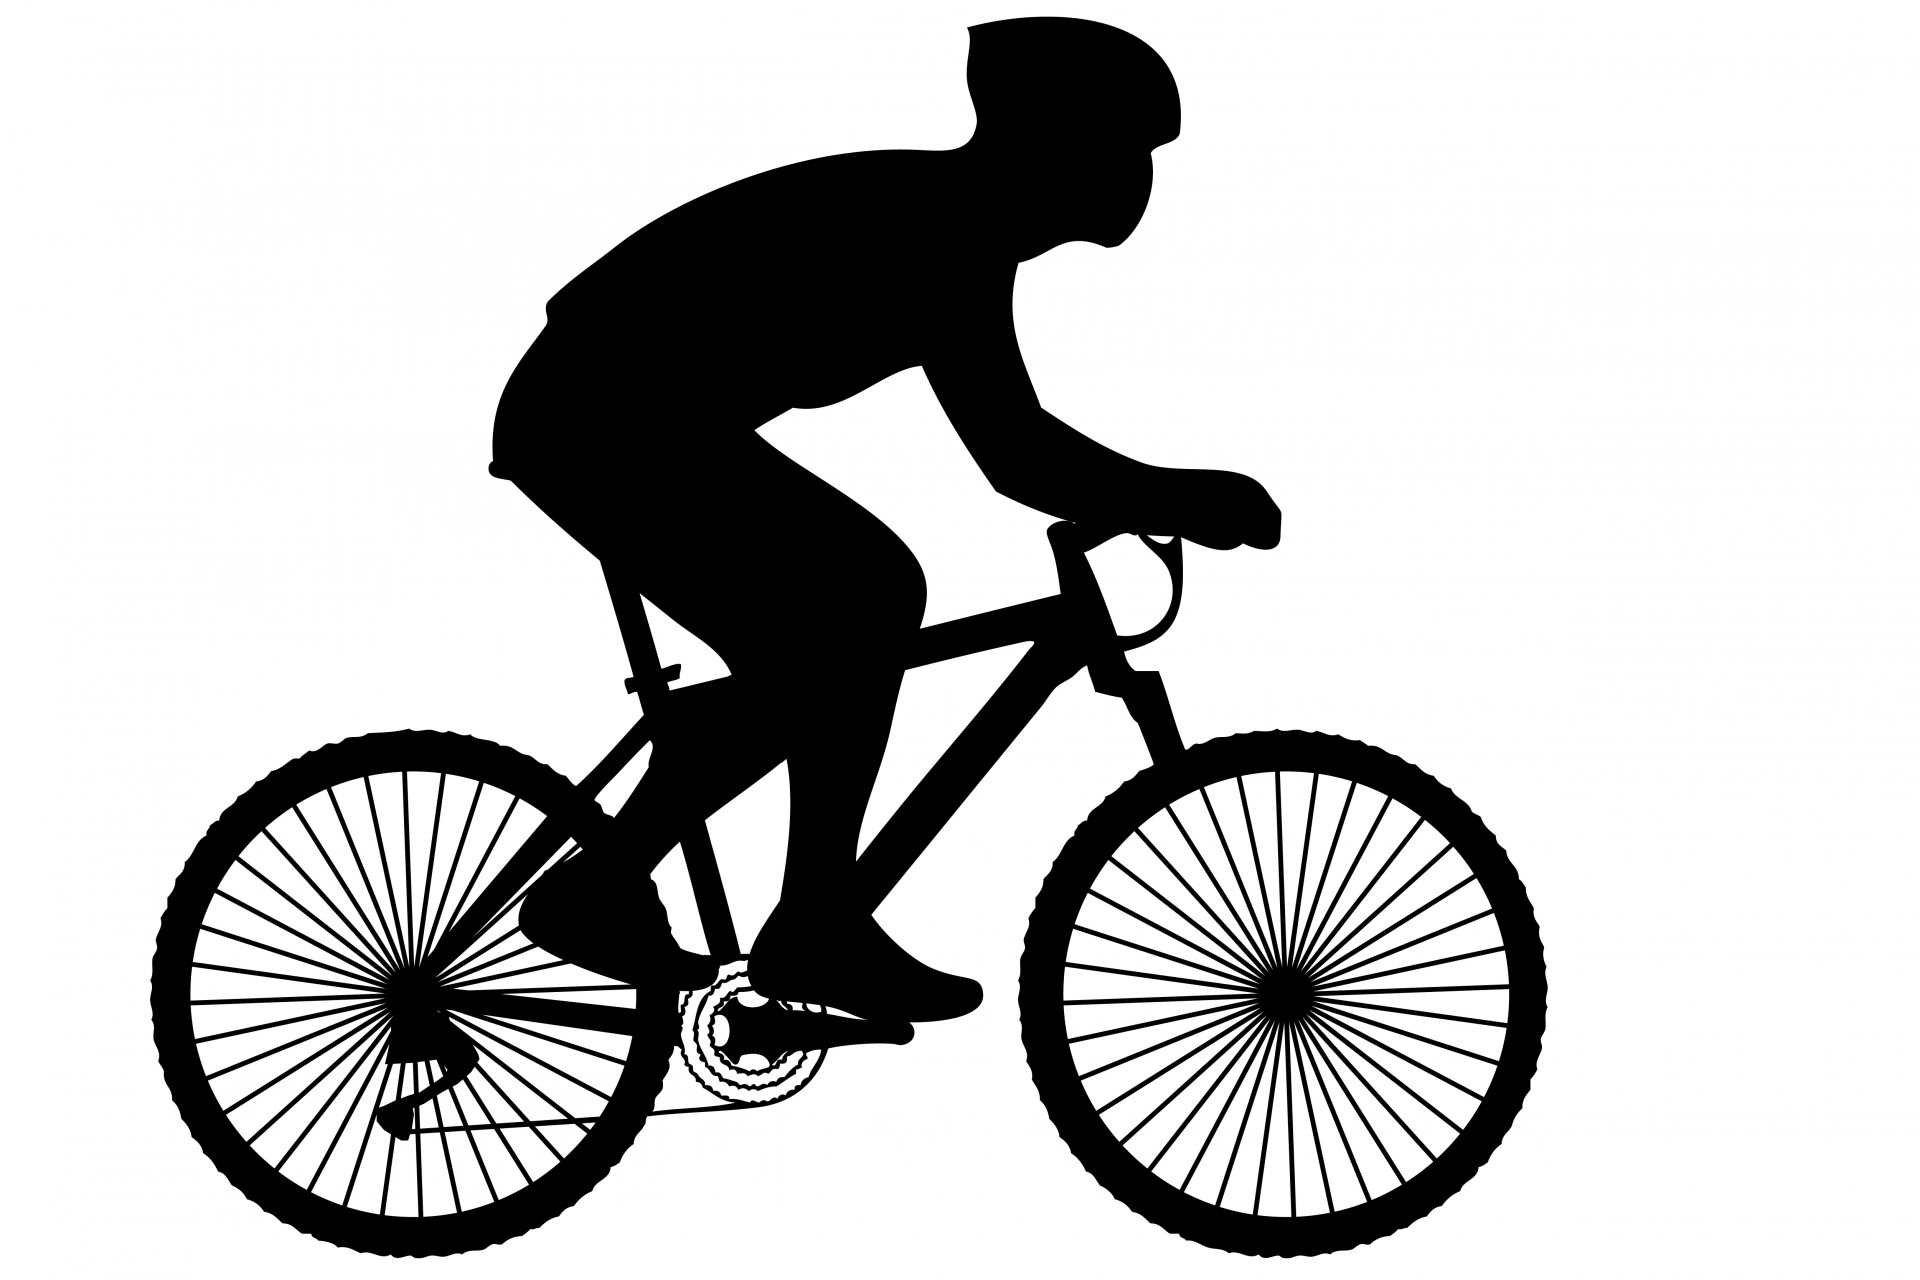 Cycle clipart png black and white download Cycle clipart free - ClipartFest png black and white download